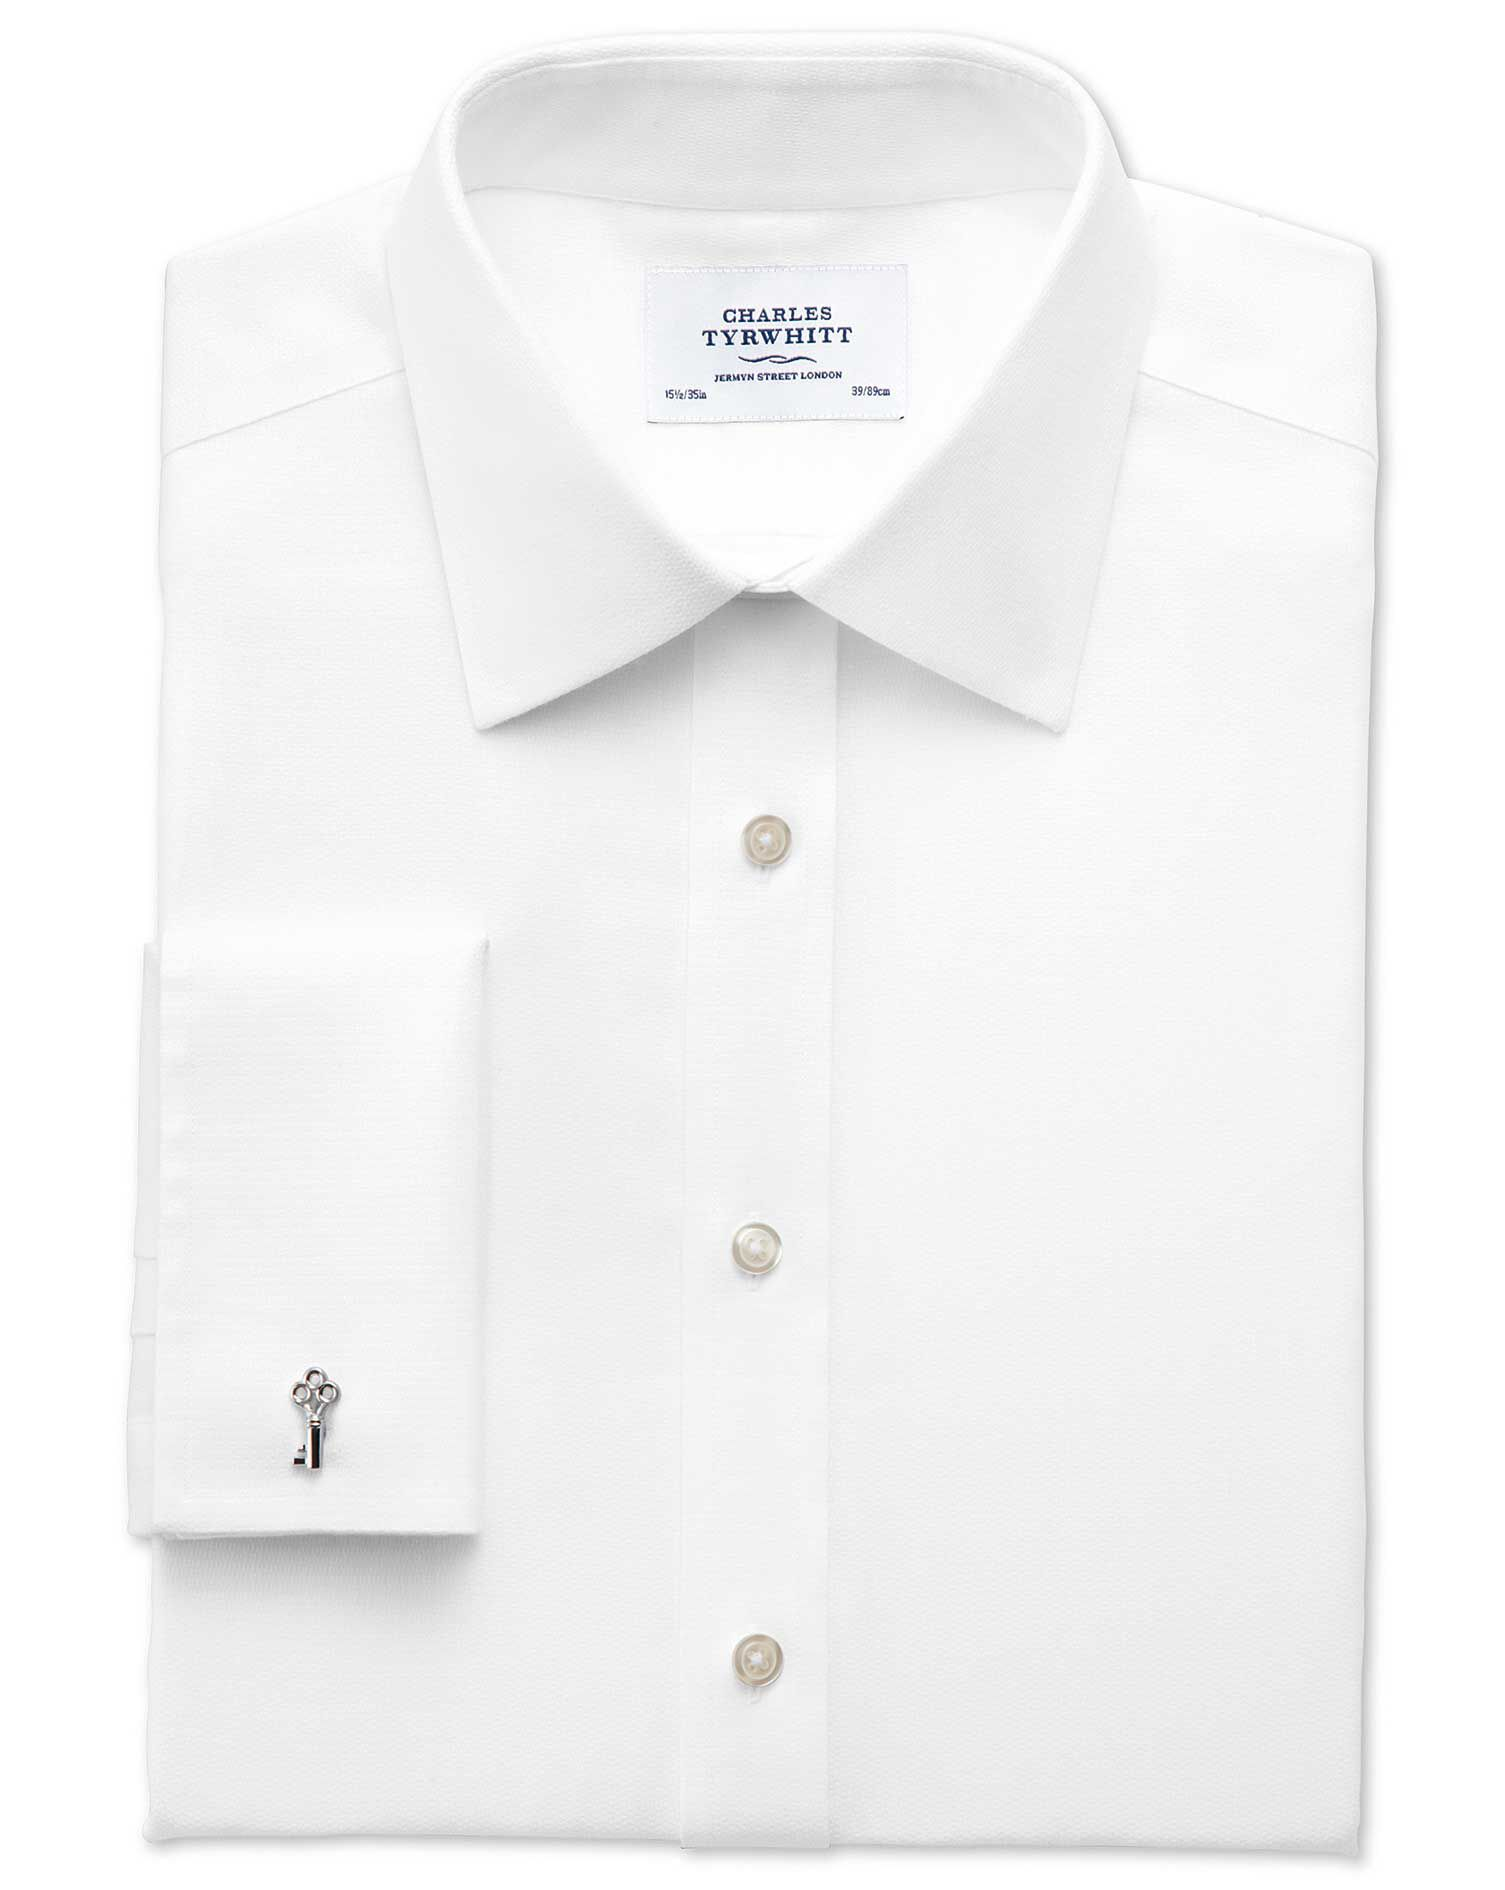 Slim Fit Non-Iron Imperial Weave White Cotton Formal Shirt Single Cuff Size 16.5/34 by Charles Tyrwh